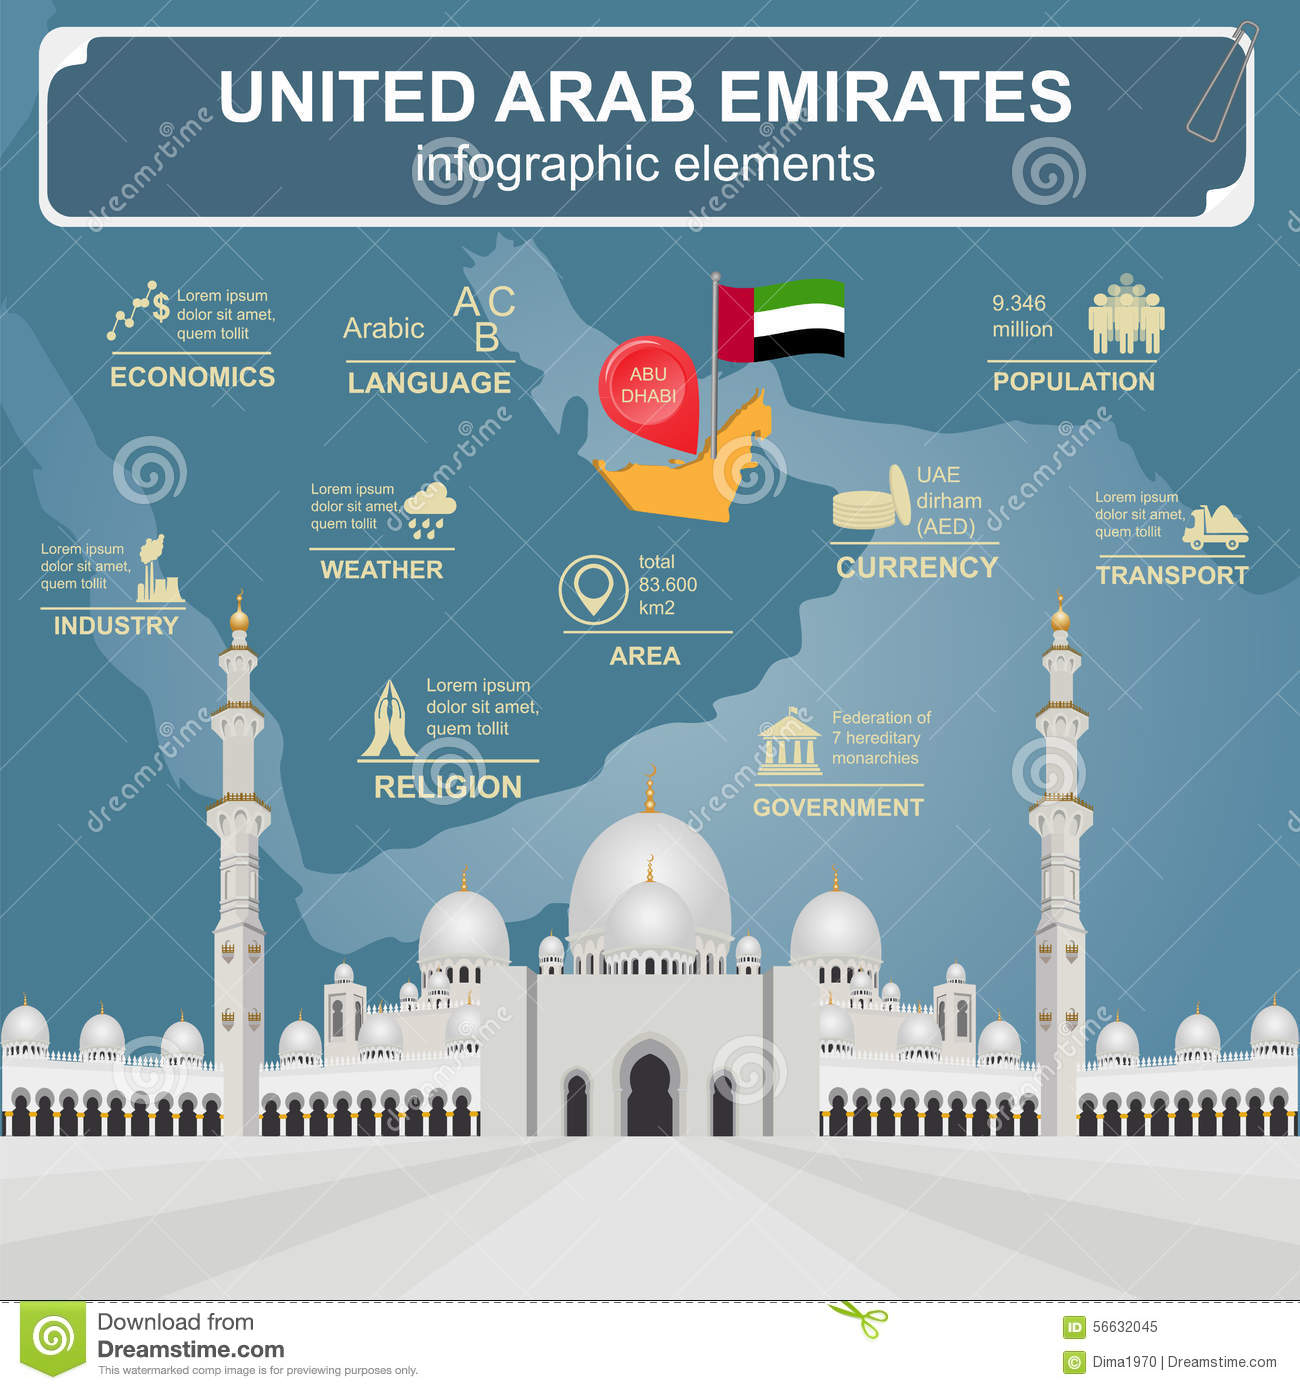 Abu Habits Icard: United Arab Emirates Infographics, Statistical Data